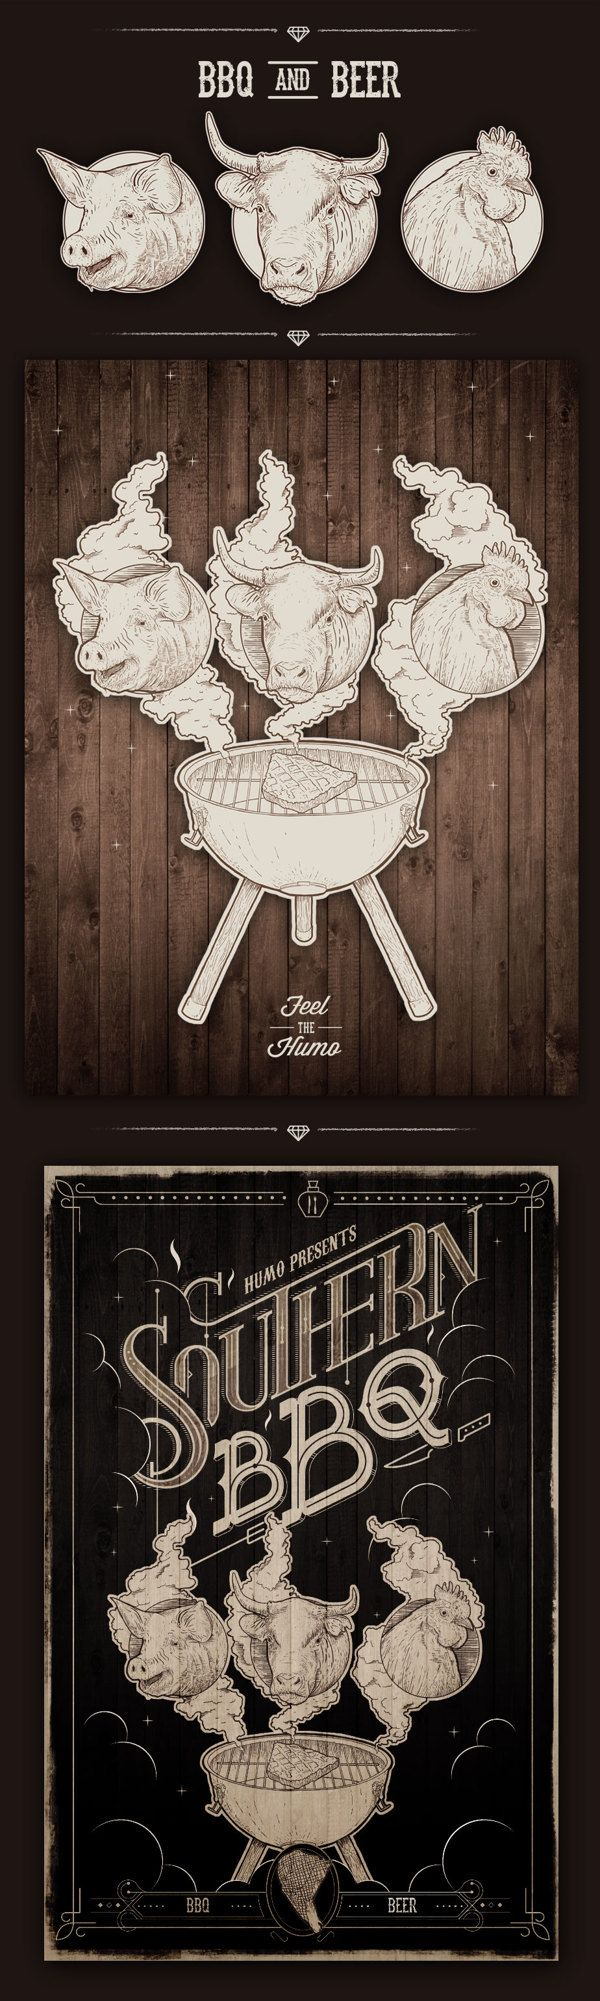 Southern BBQ / Humo by Mateo Rios, via Behance